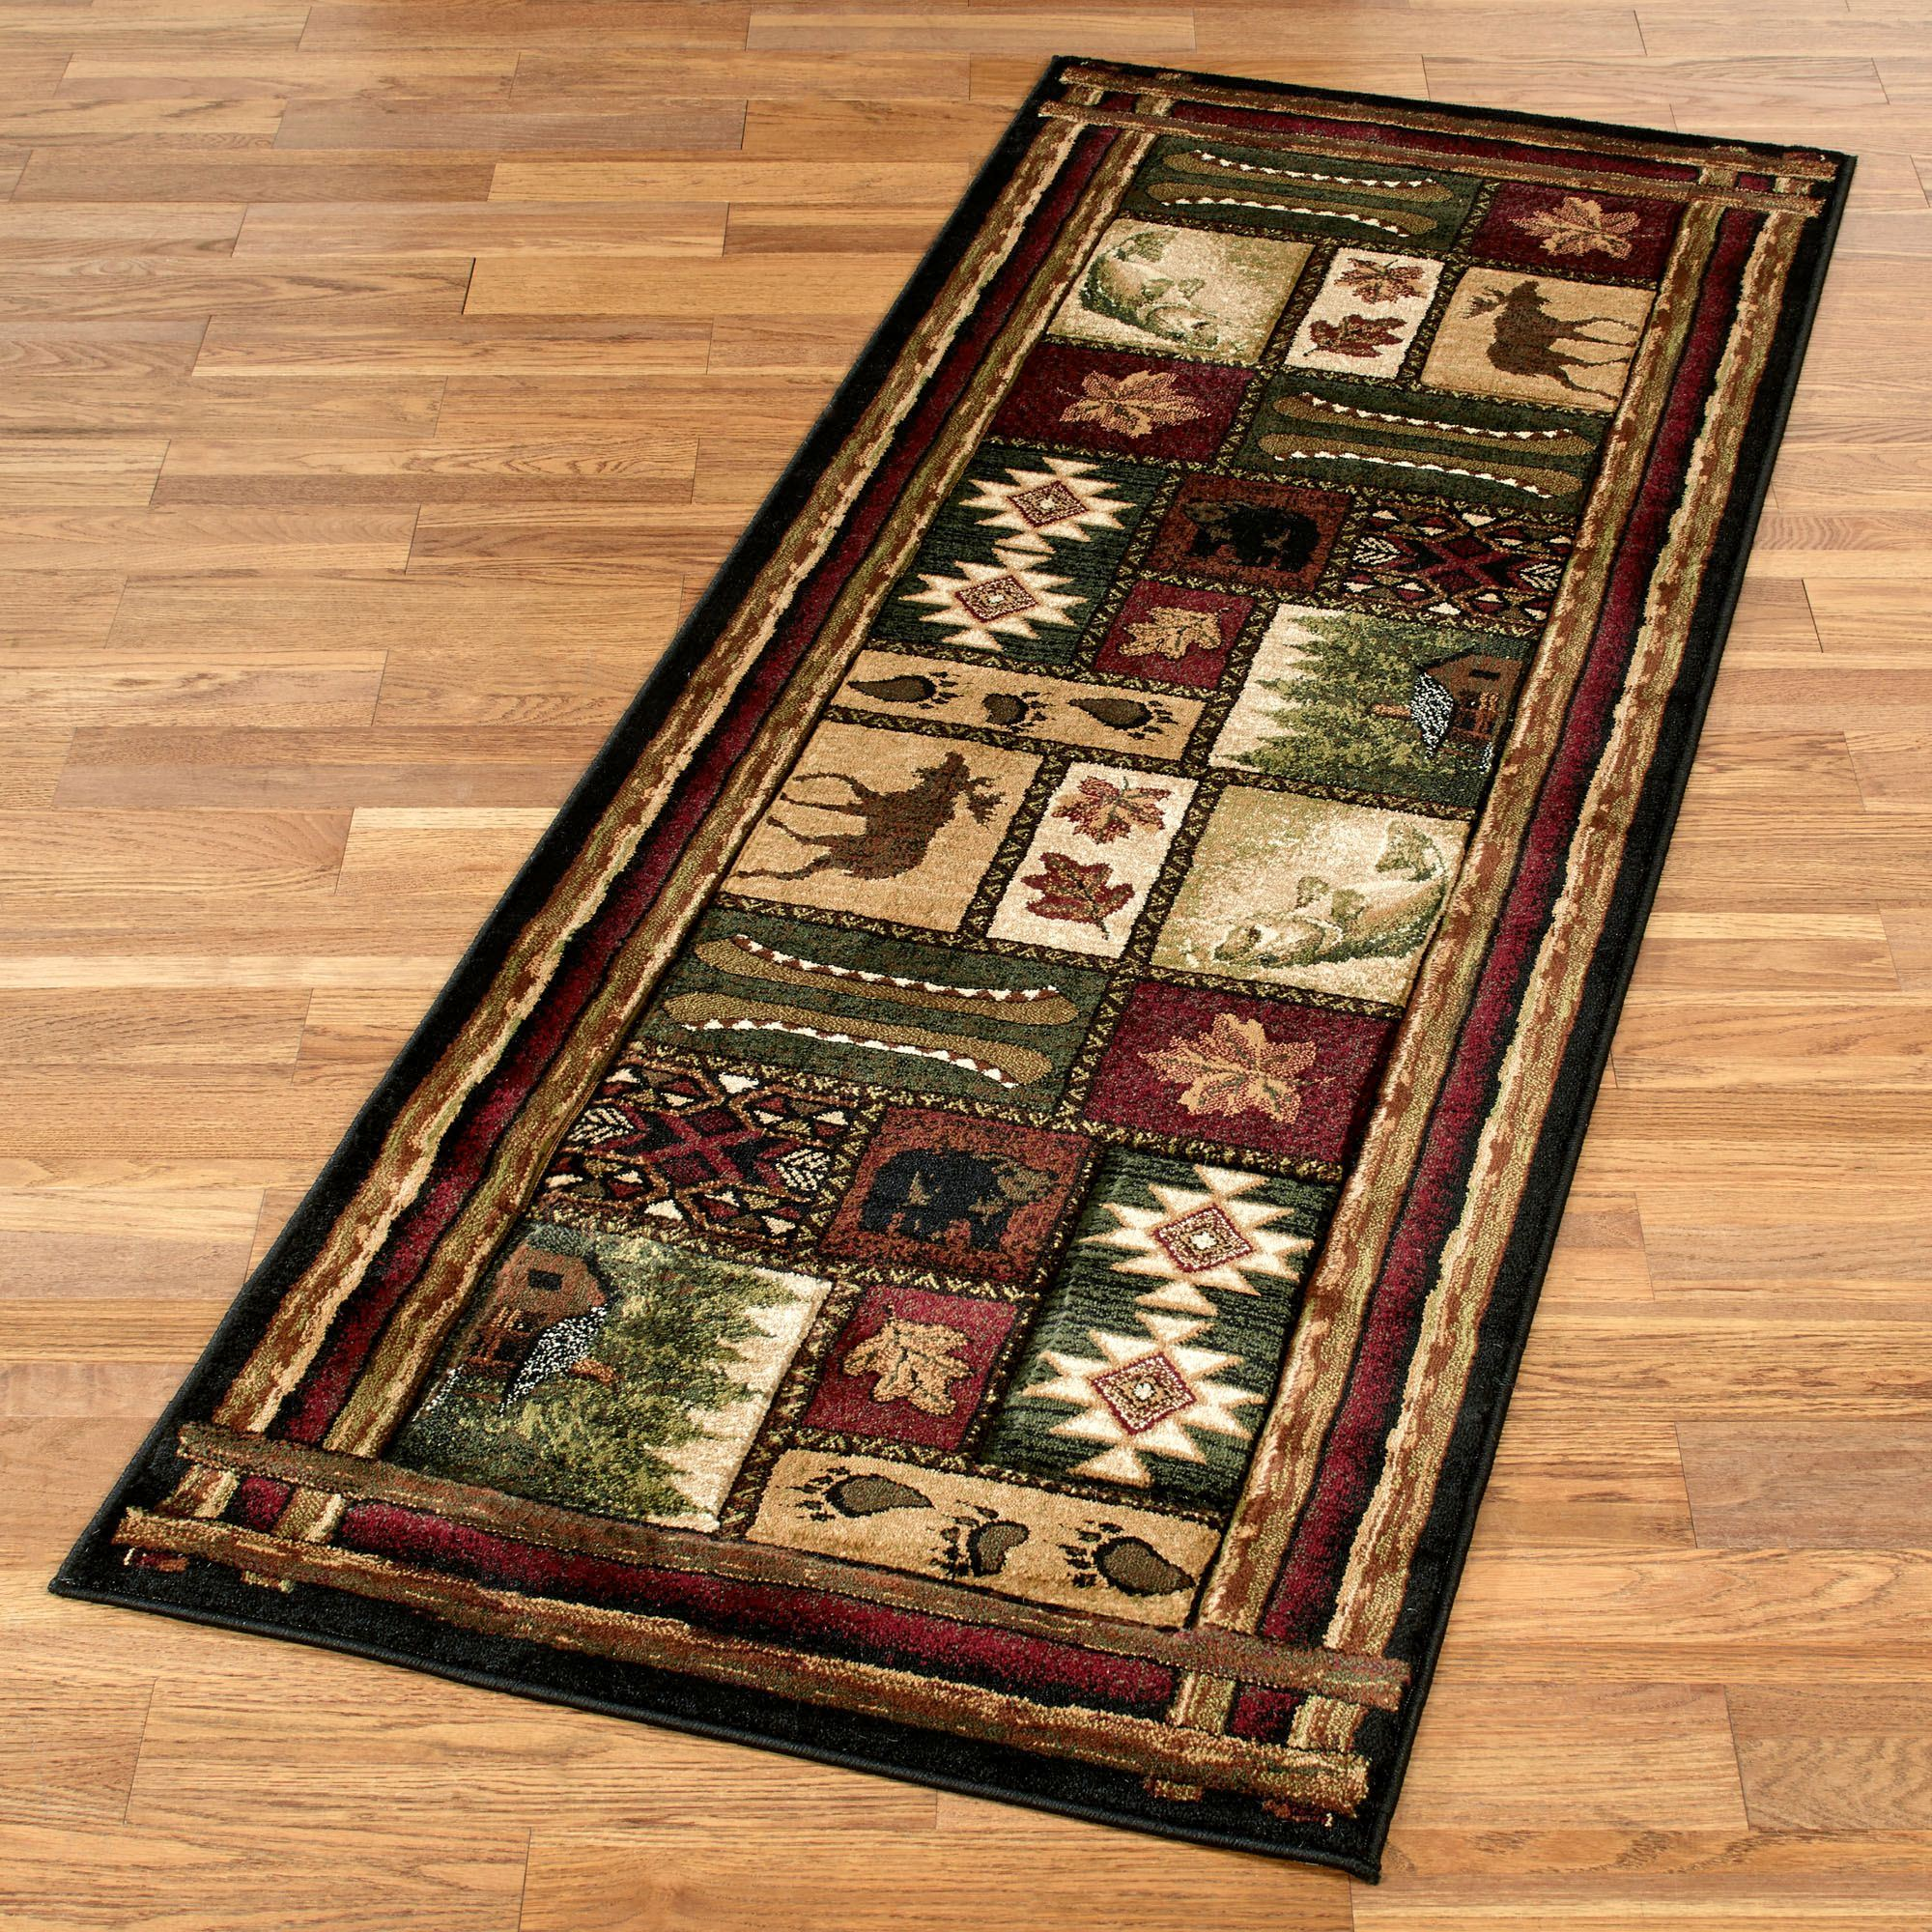 Cabin chalet rustic rug runner for Runners carpets and rugs